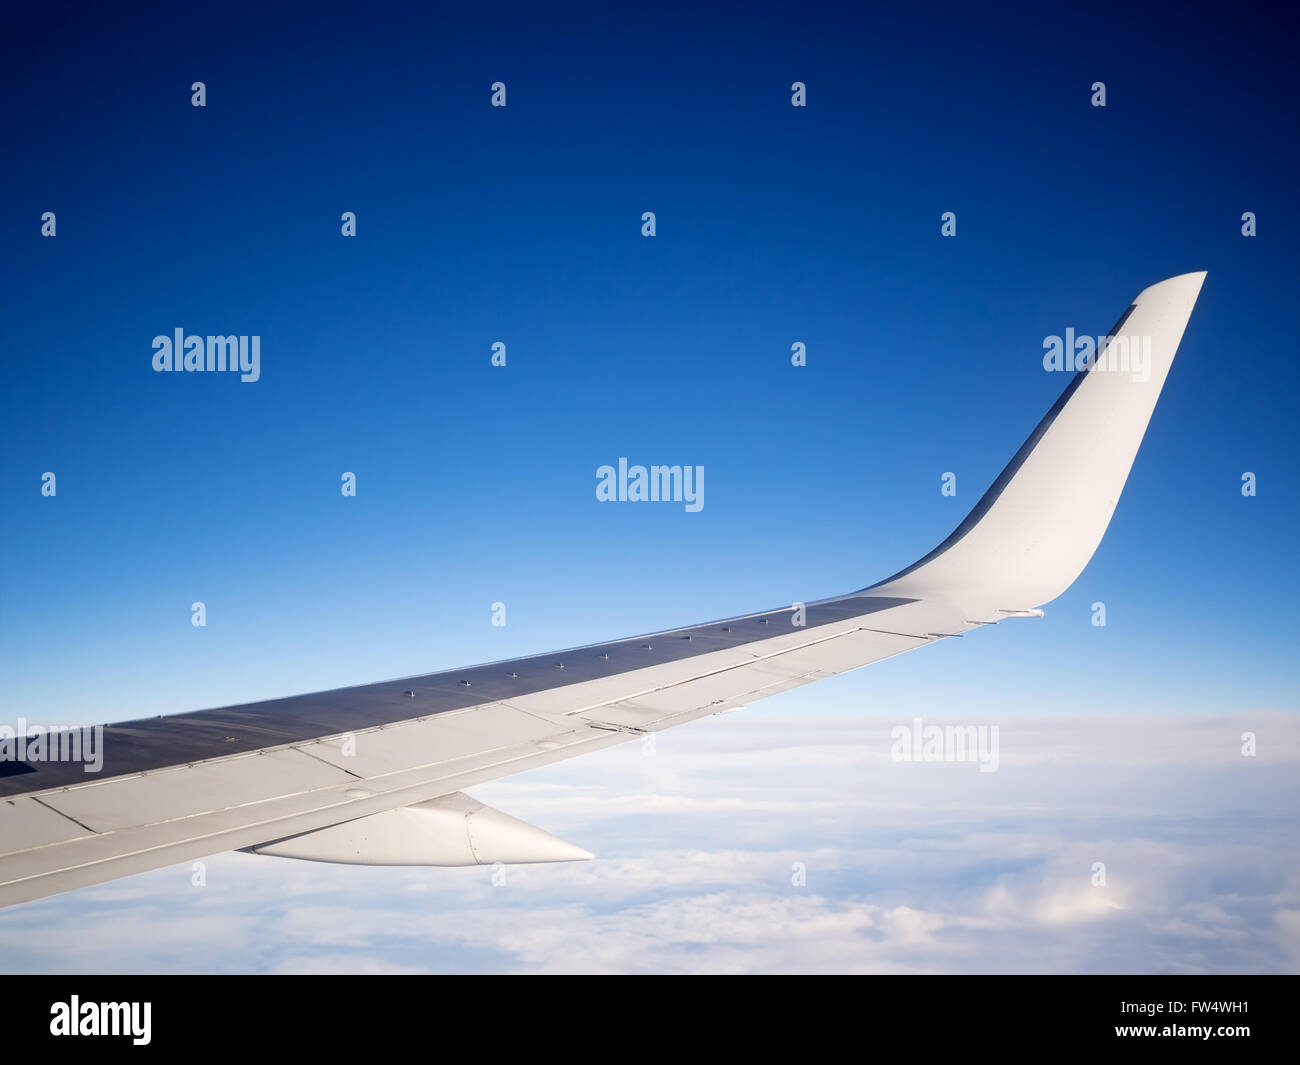 Airliner wing, clouds and blue sky copy space - Stock Image